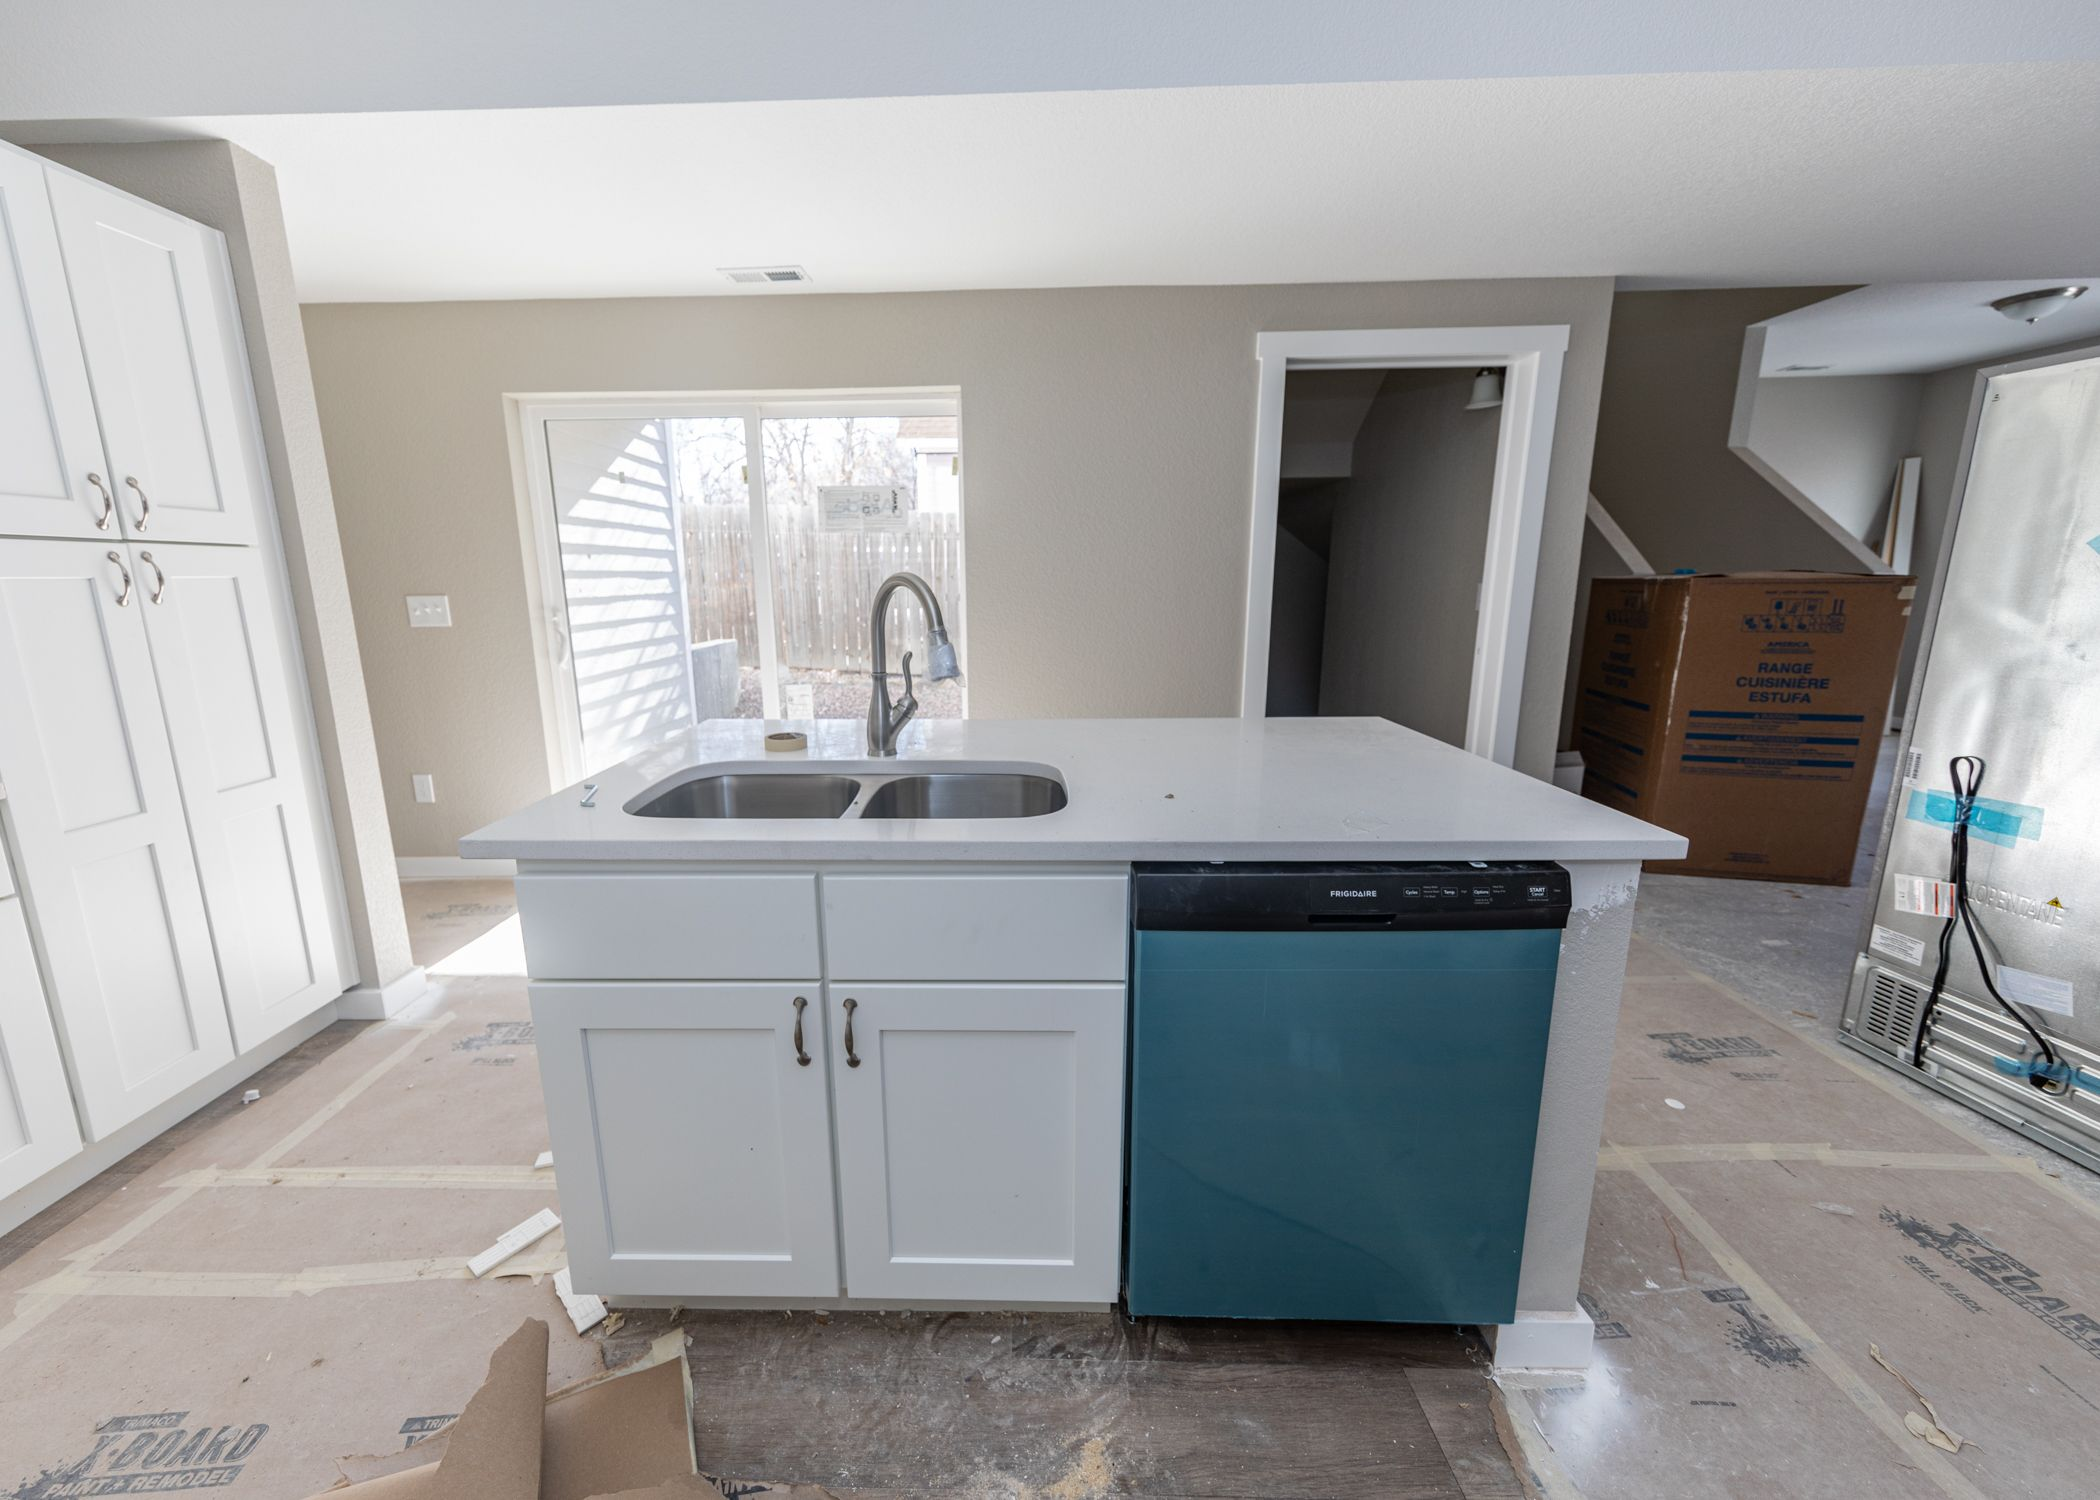 Kitchen featured in the La Plata By Ideal Homes in Colorado Springs, CO